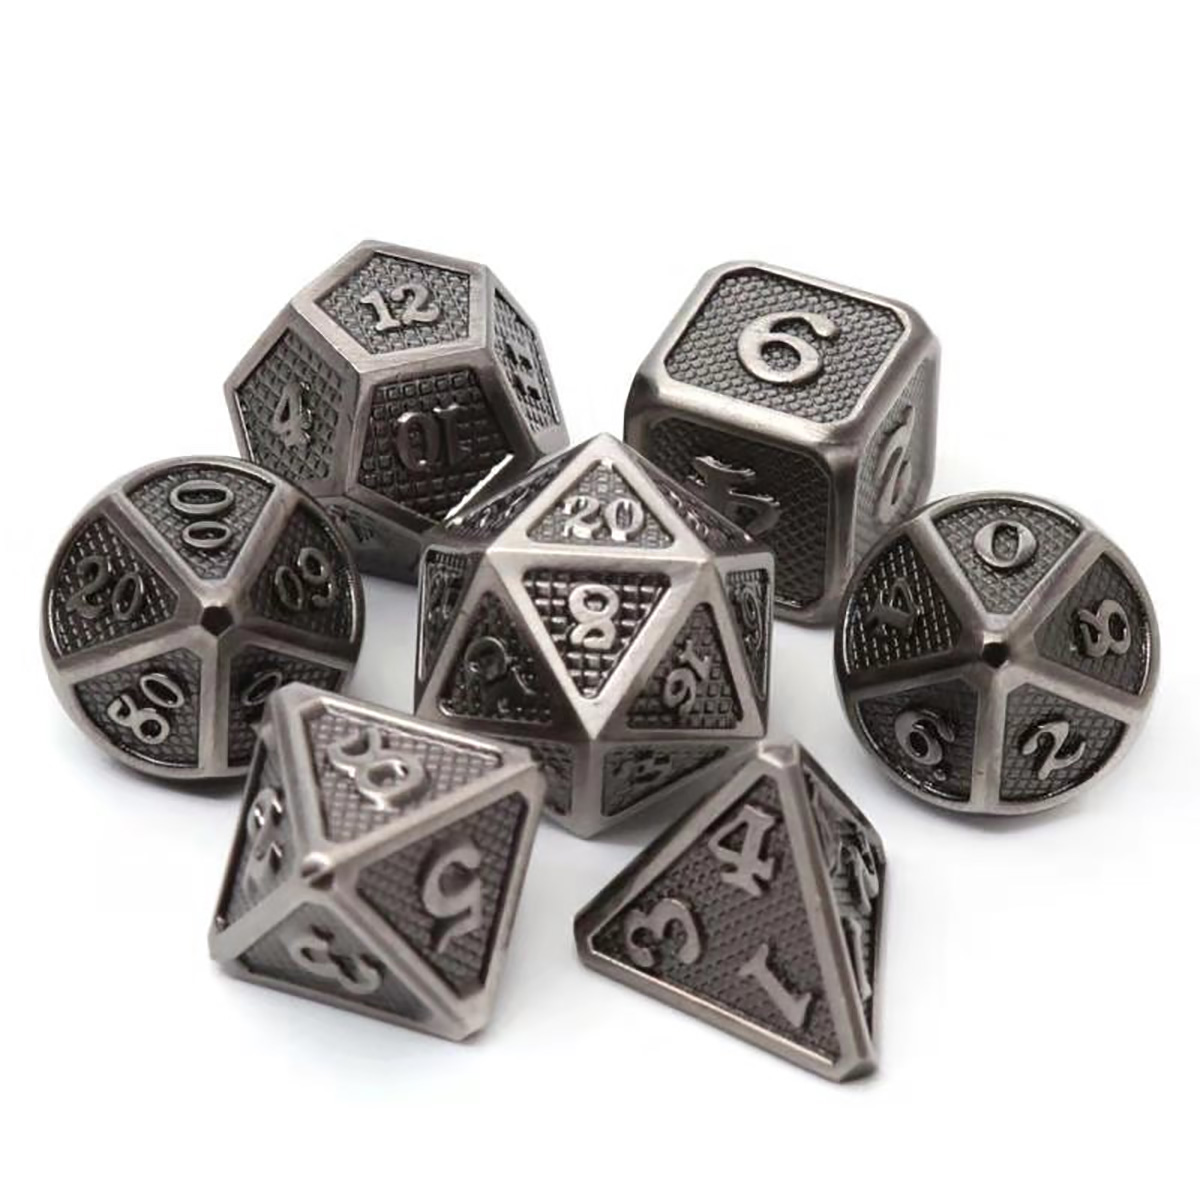 7 Pcs/Set Alloy Metal Dice Set Playing Game Poker Card Dungeons Dragons Party Board Game Toy